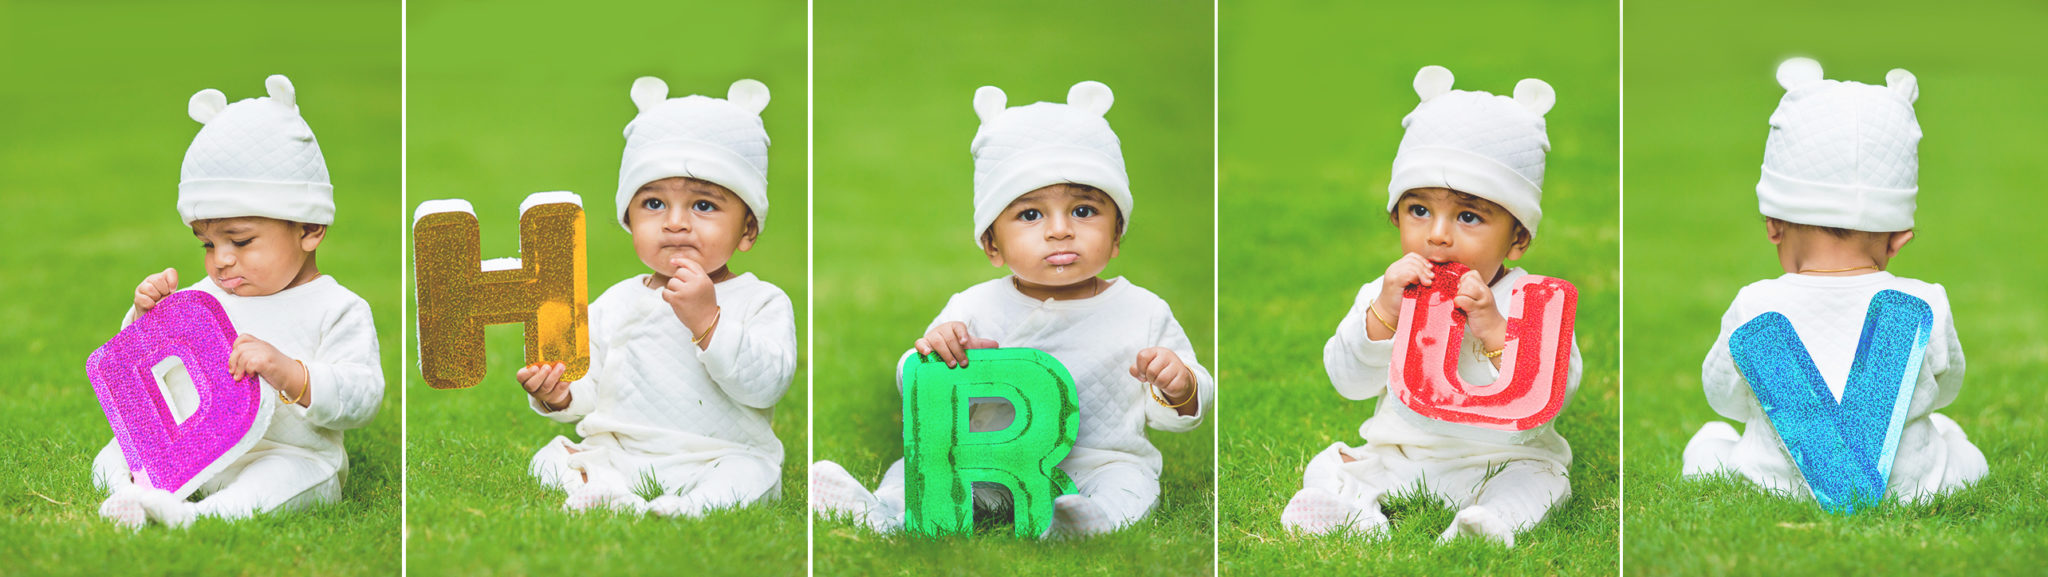 Neeta-Shankar-Photography-Baby-outdoor-Shoot-kid-children-Portraits-babyboy-Bangalore-collage